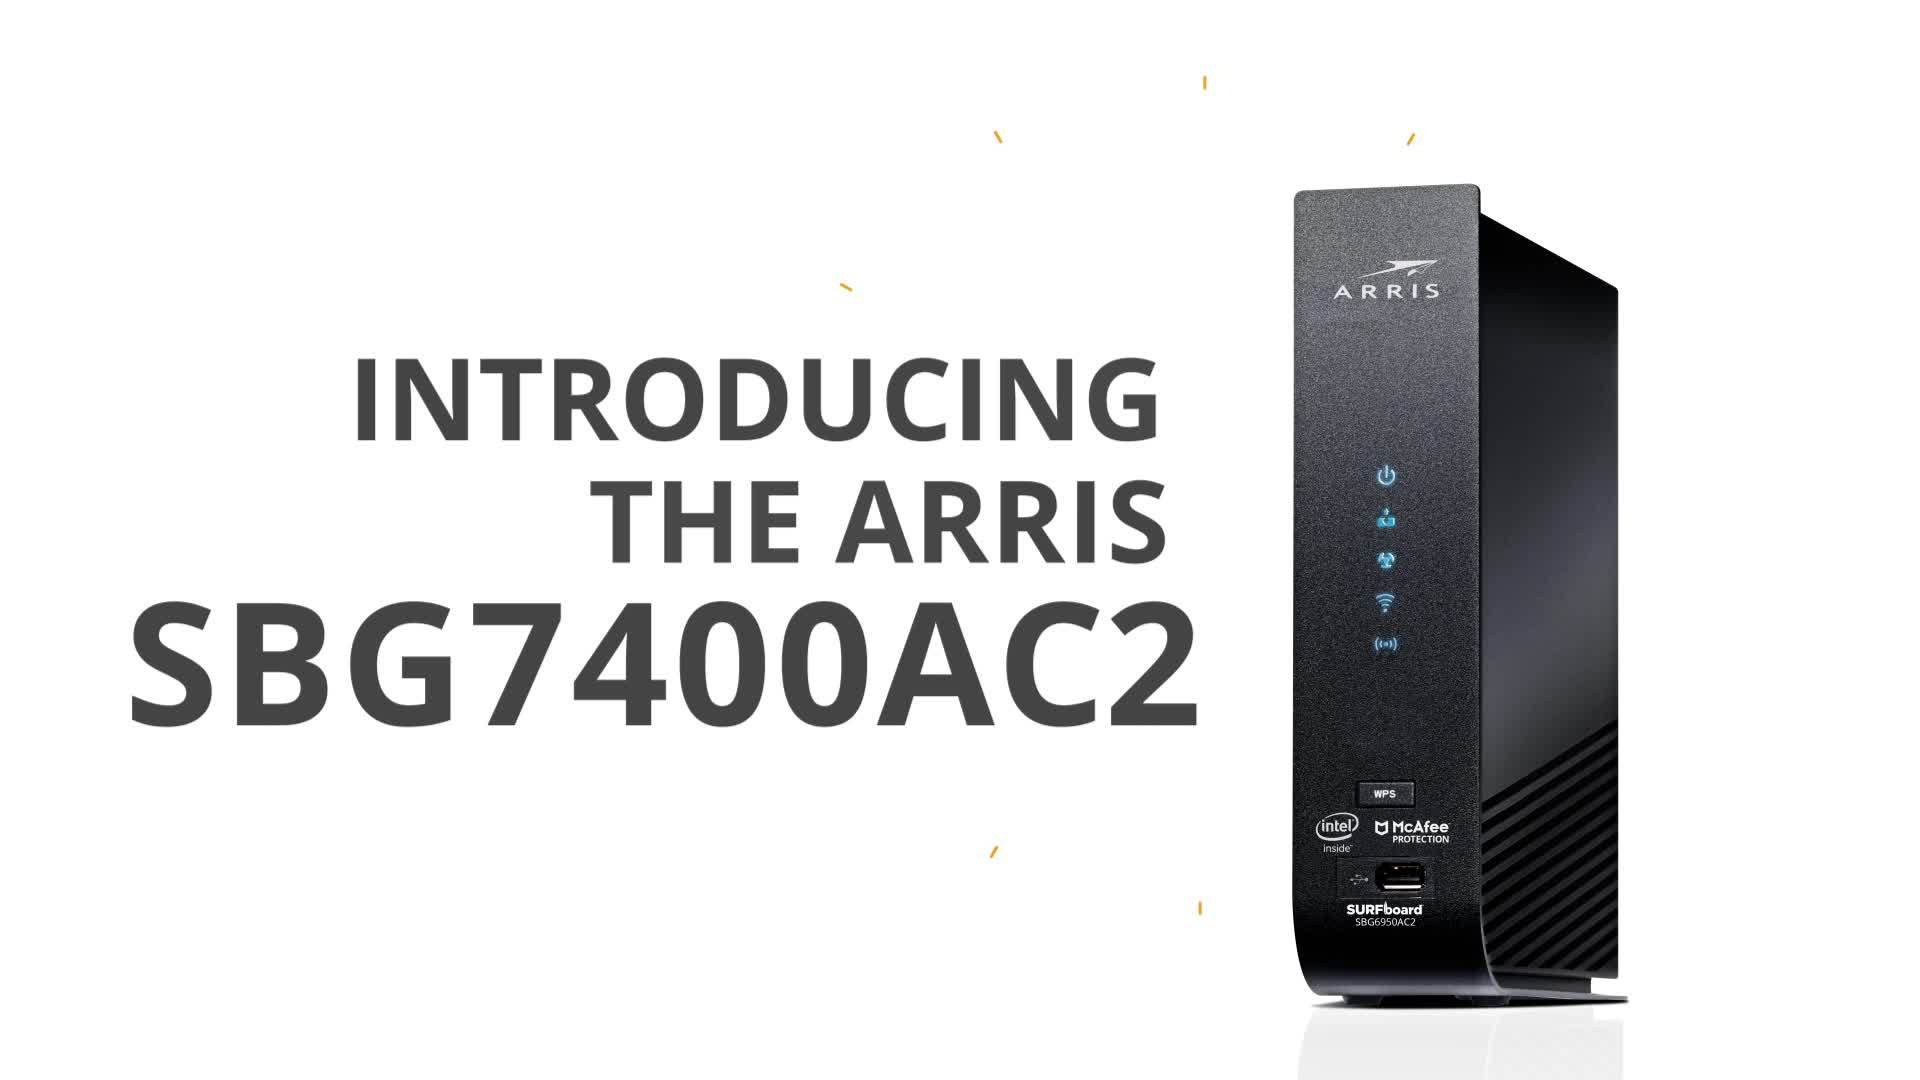 Arris SURFboard SBG7400AC2 Cable Modem and Wi-Fi Router with ARRIS Secure  Home Internet by McAfee - Newegg com